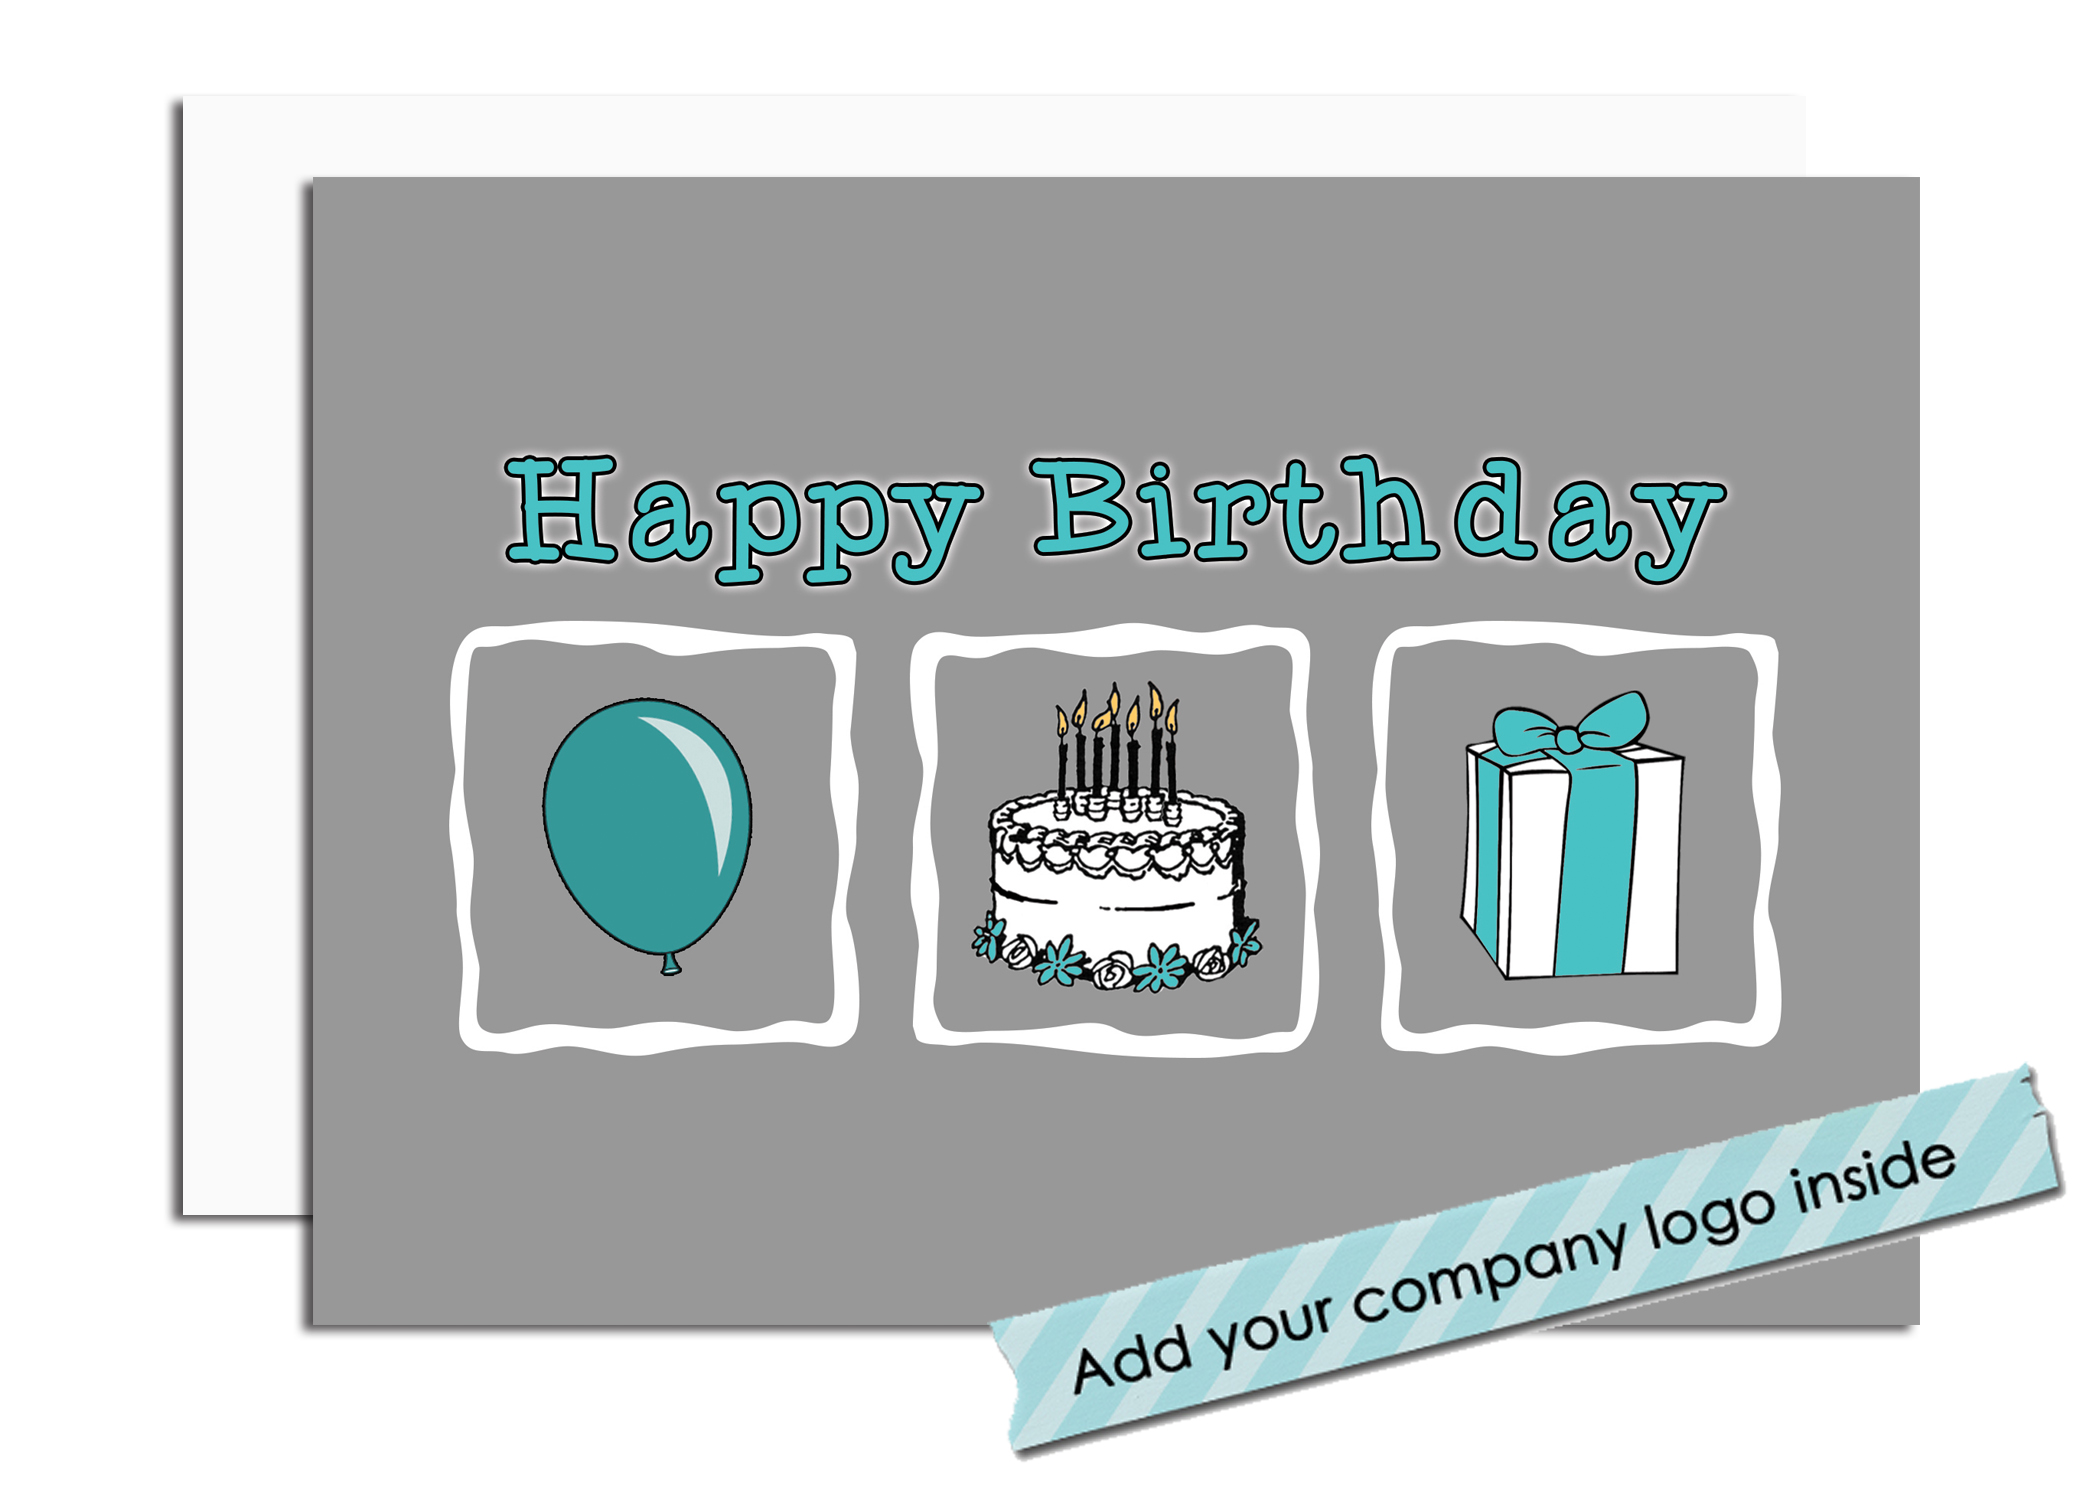 Corporate Funny Birthday Card